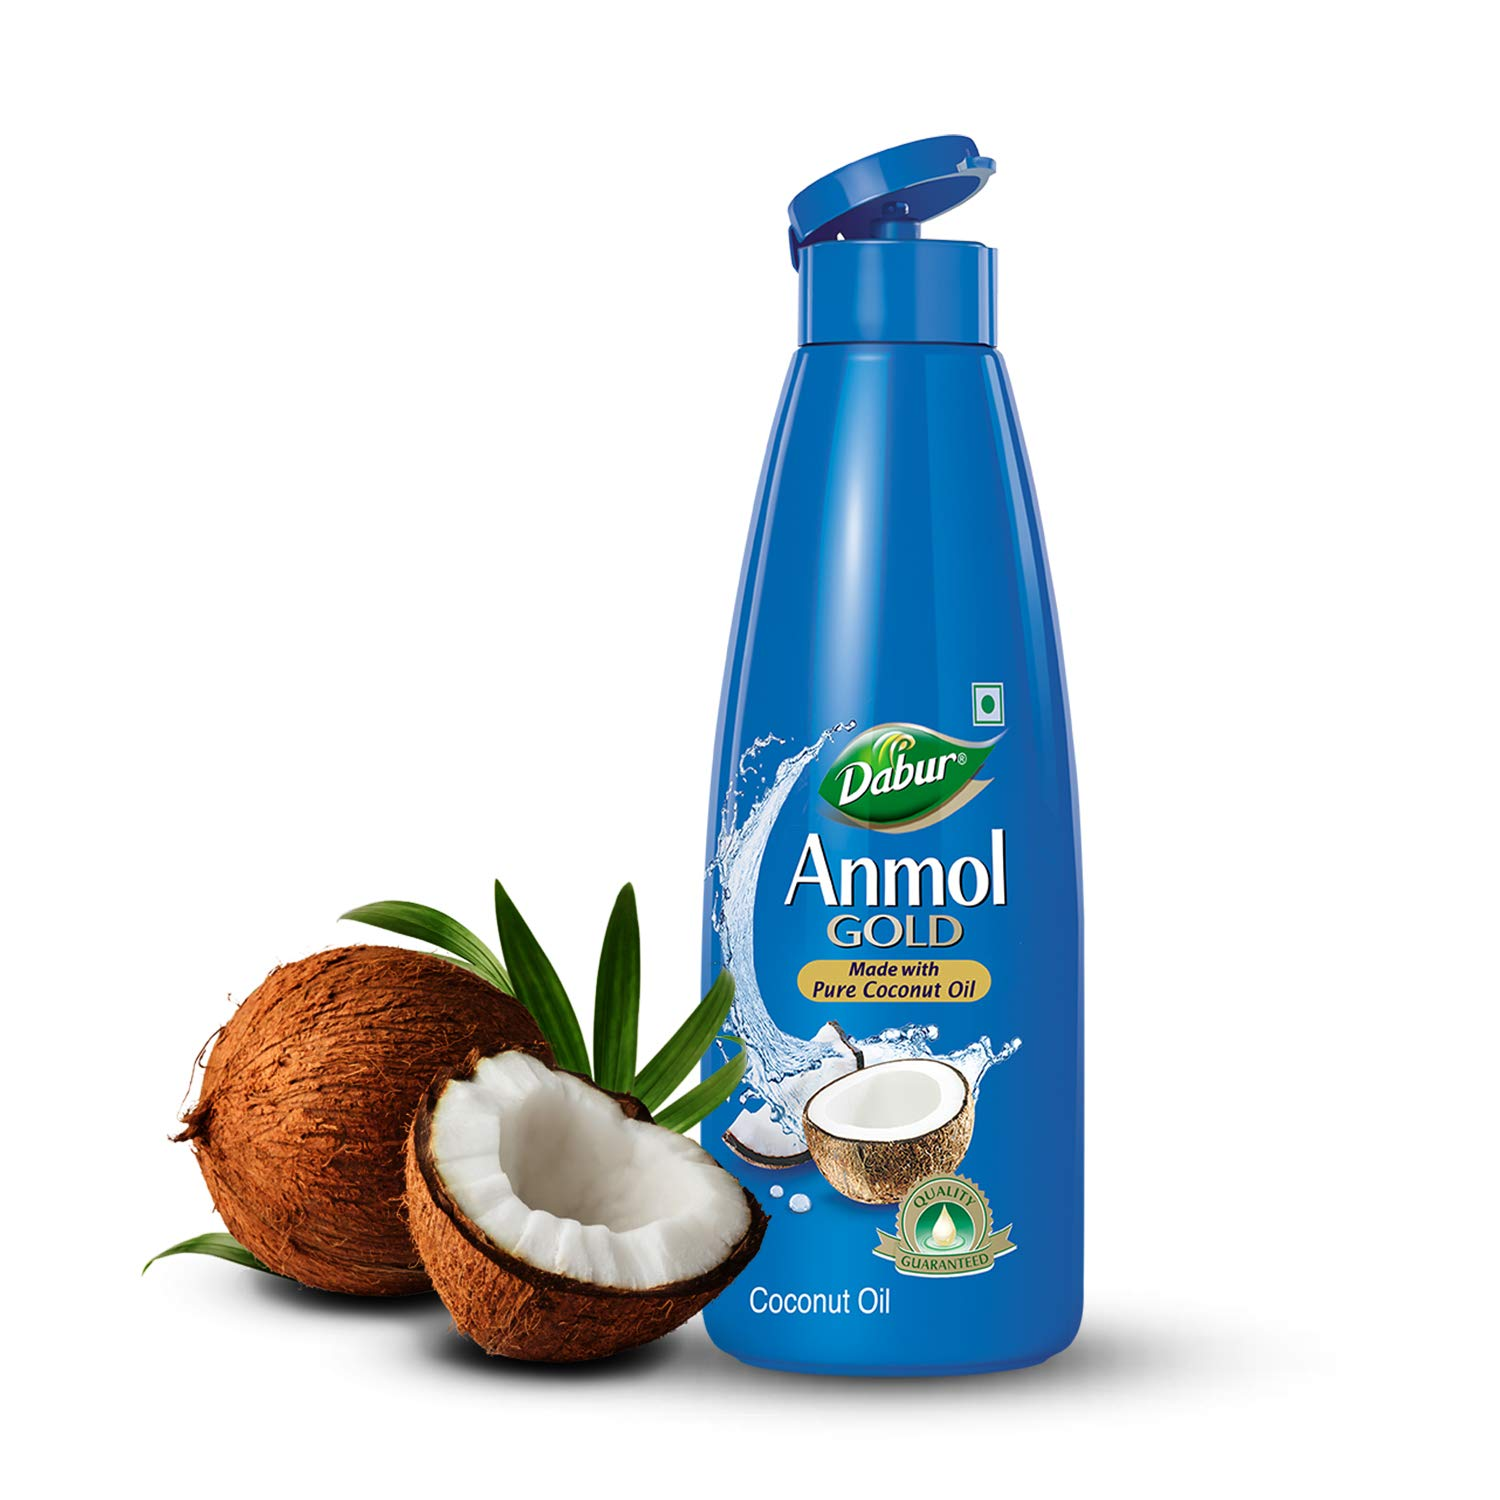 [Pantry] Dabur Anmol Gold 100 % Pure Coconut Oil - 600ml (500ml+20% Extra)